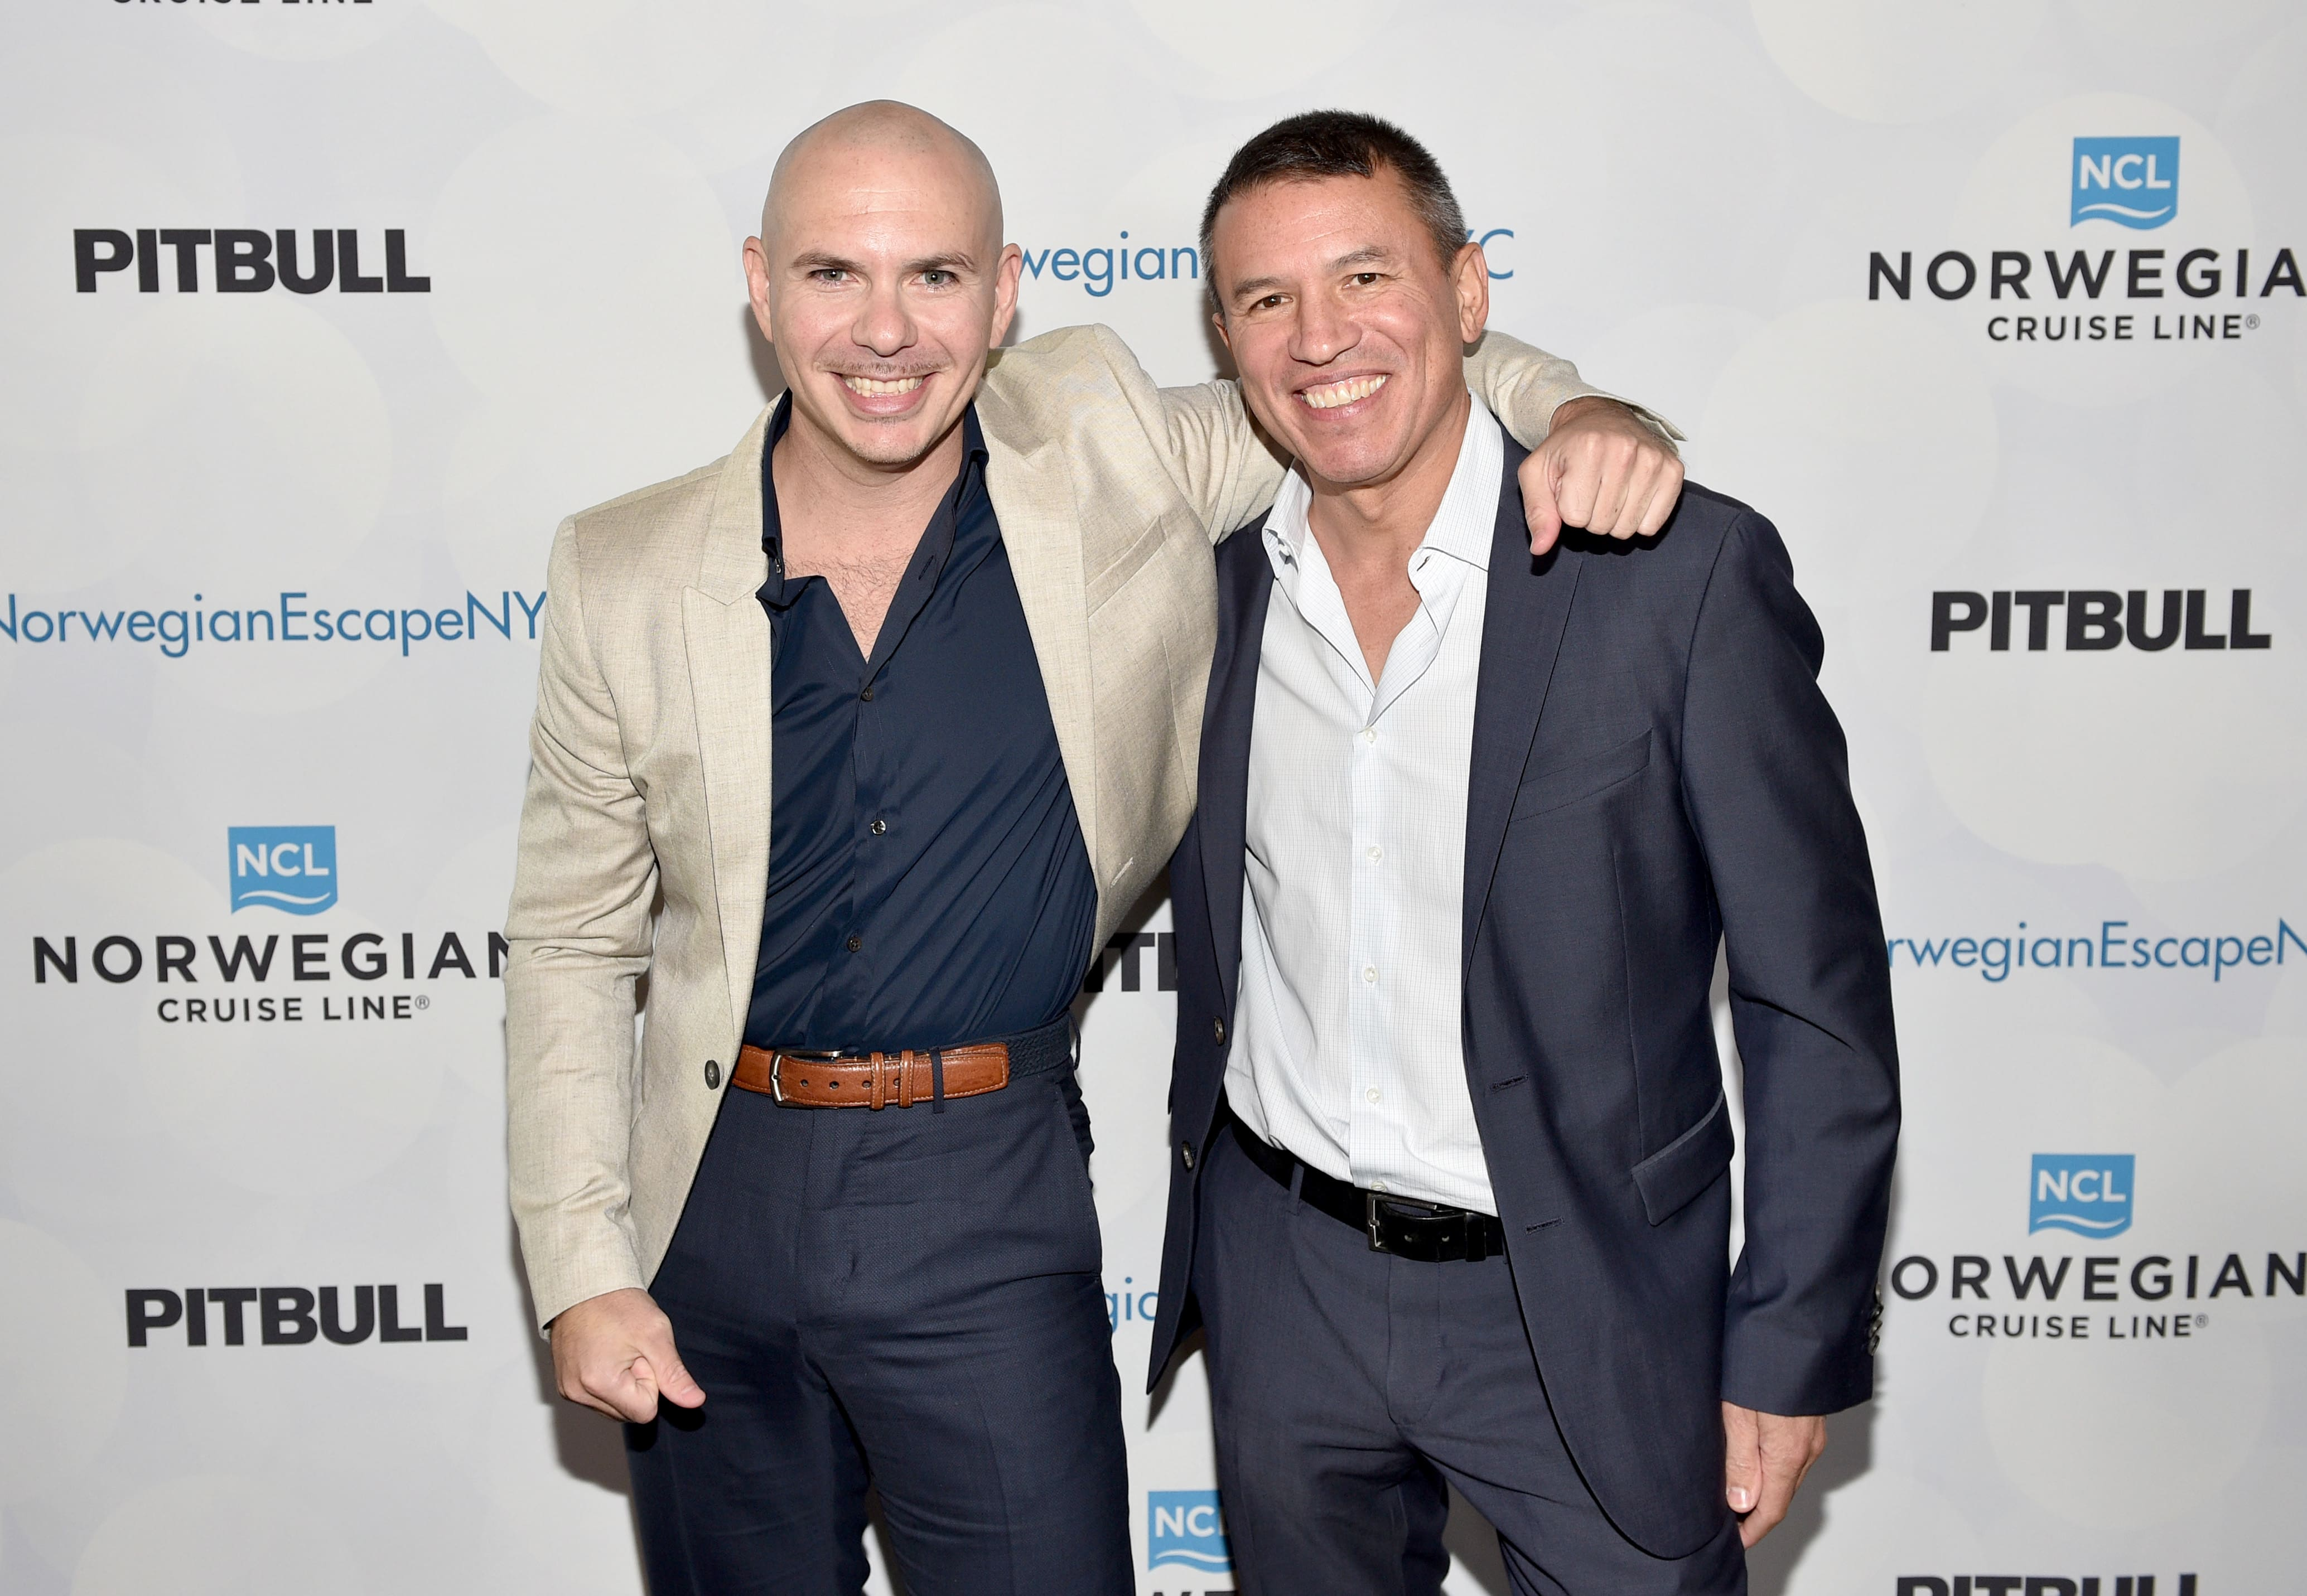 Pitbull with NCL President and CEO Andy Stuart